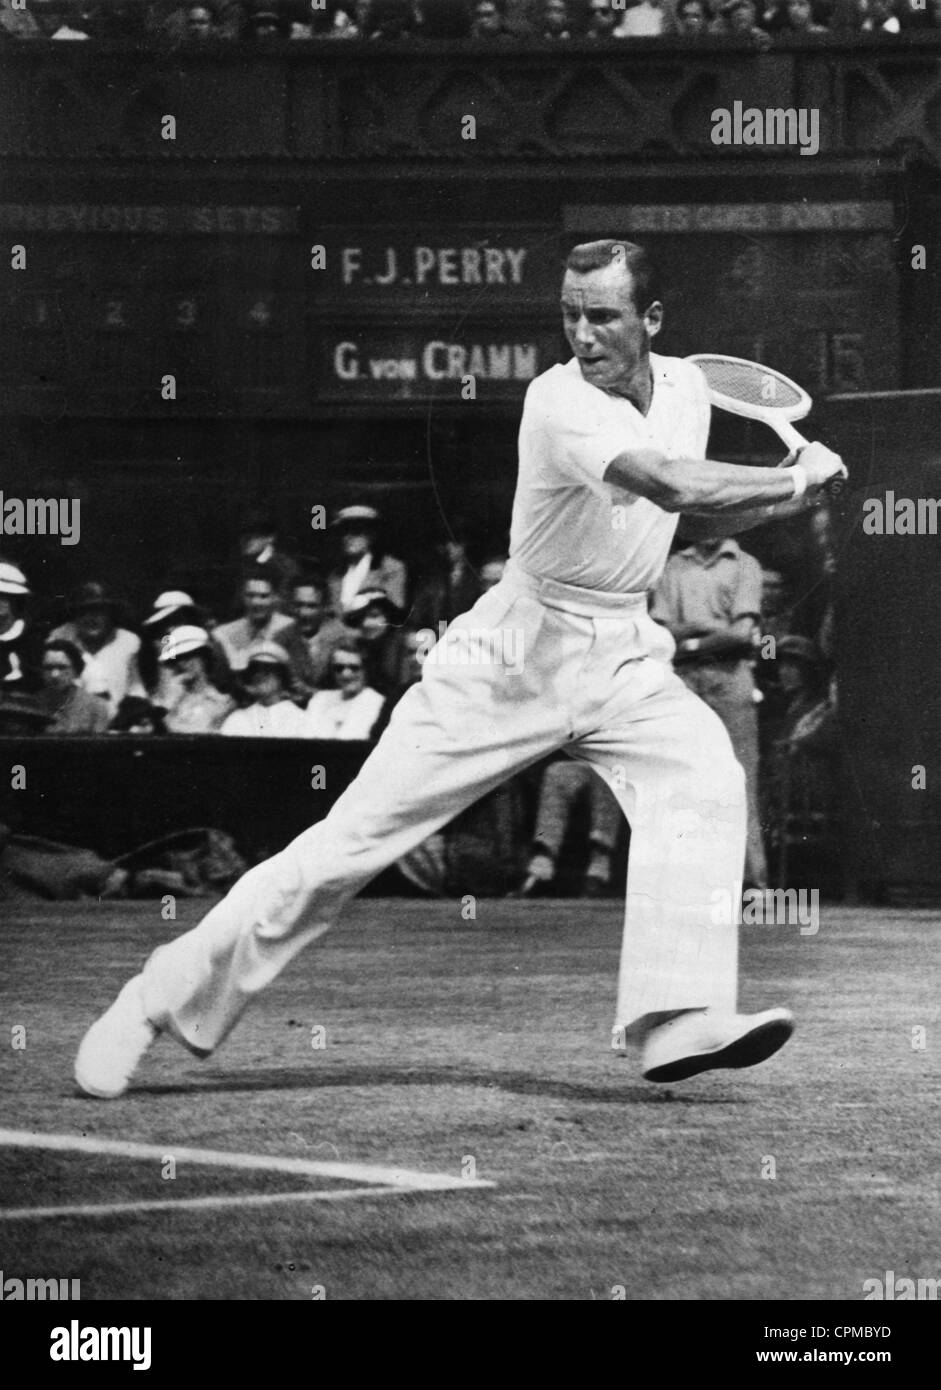 Fred Perry plays a tennis match in Wimbledon, 1936 - Stock Image